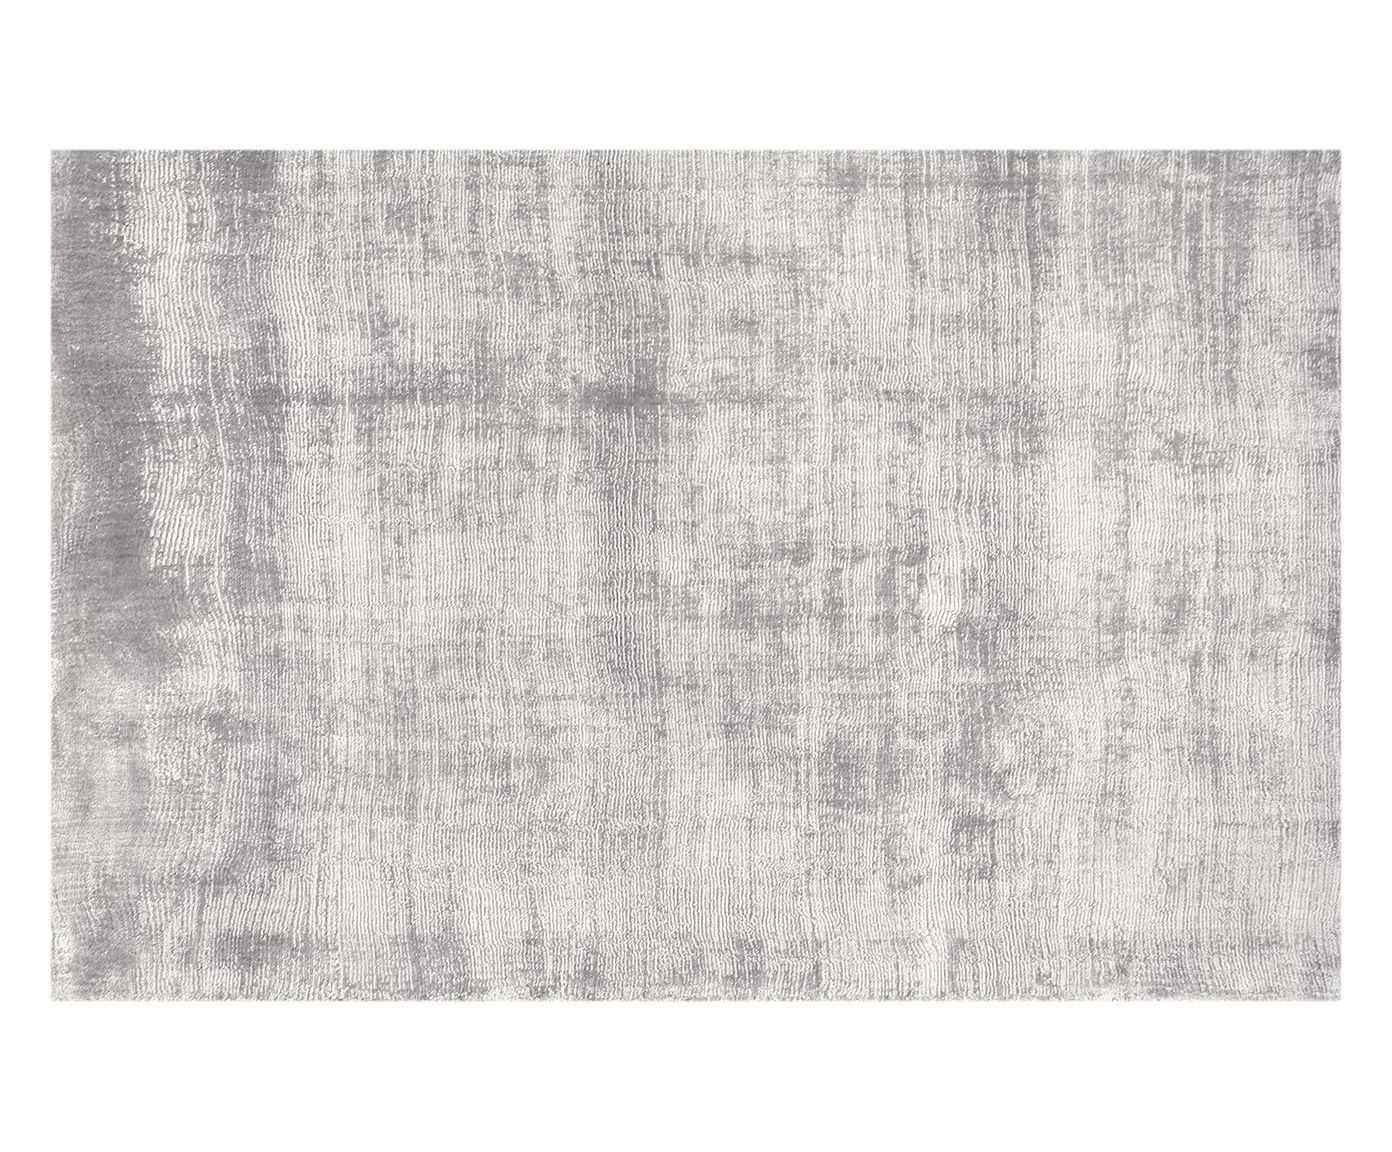 Tapete Indiano Seaburry Cinza - 200X290cm | Westwing.com.br